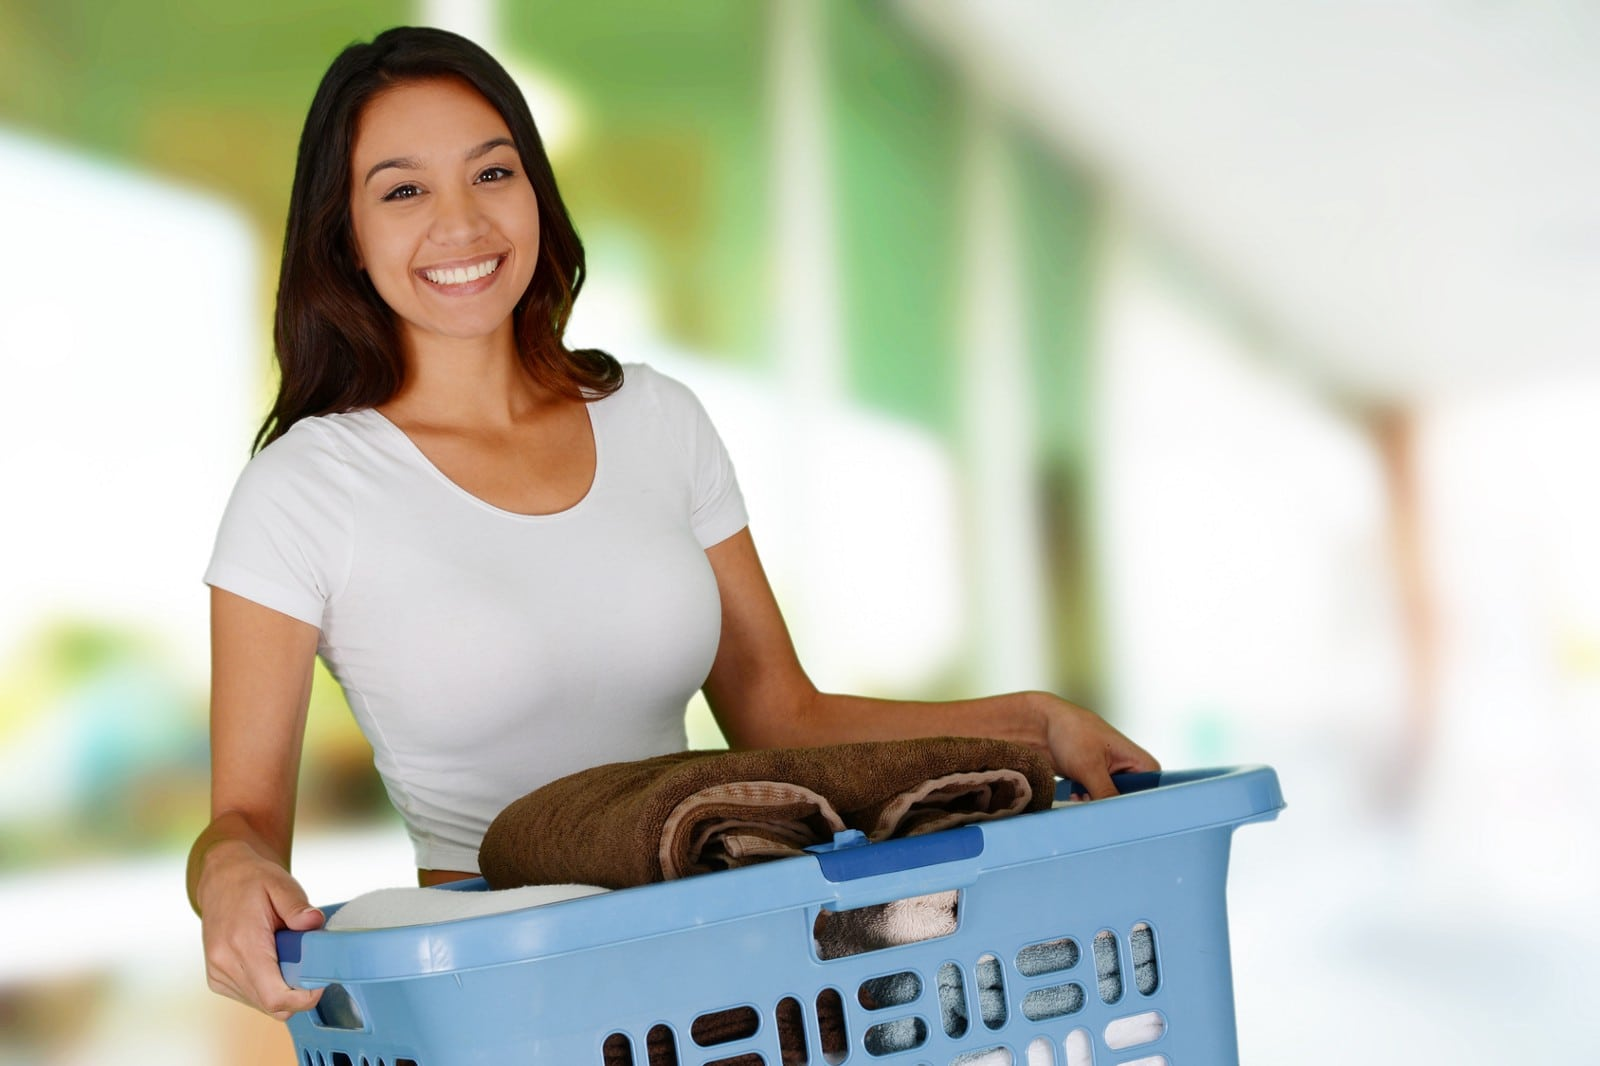 1 guoqu9KEGESem2GKwG3vzw - Why Hire Myanmar Maids? - Here Are The Benefits